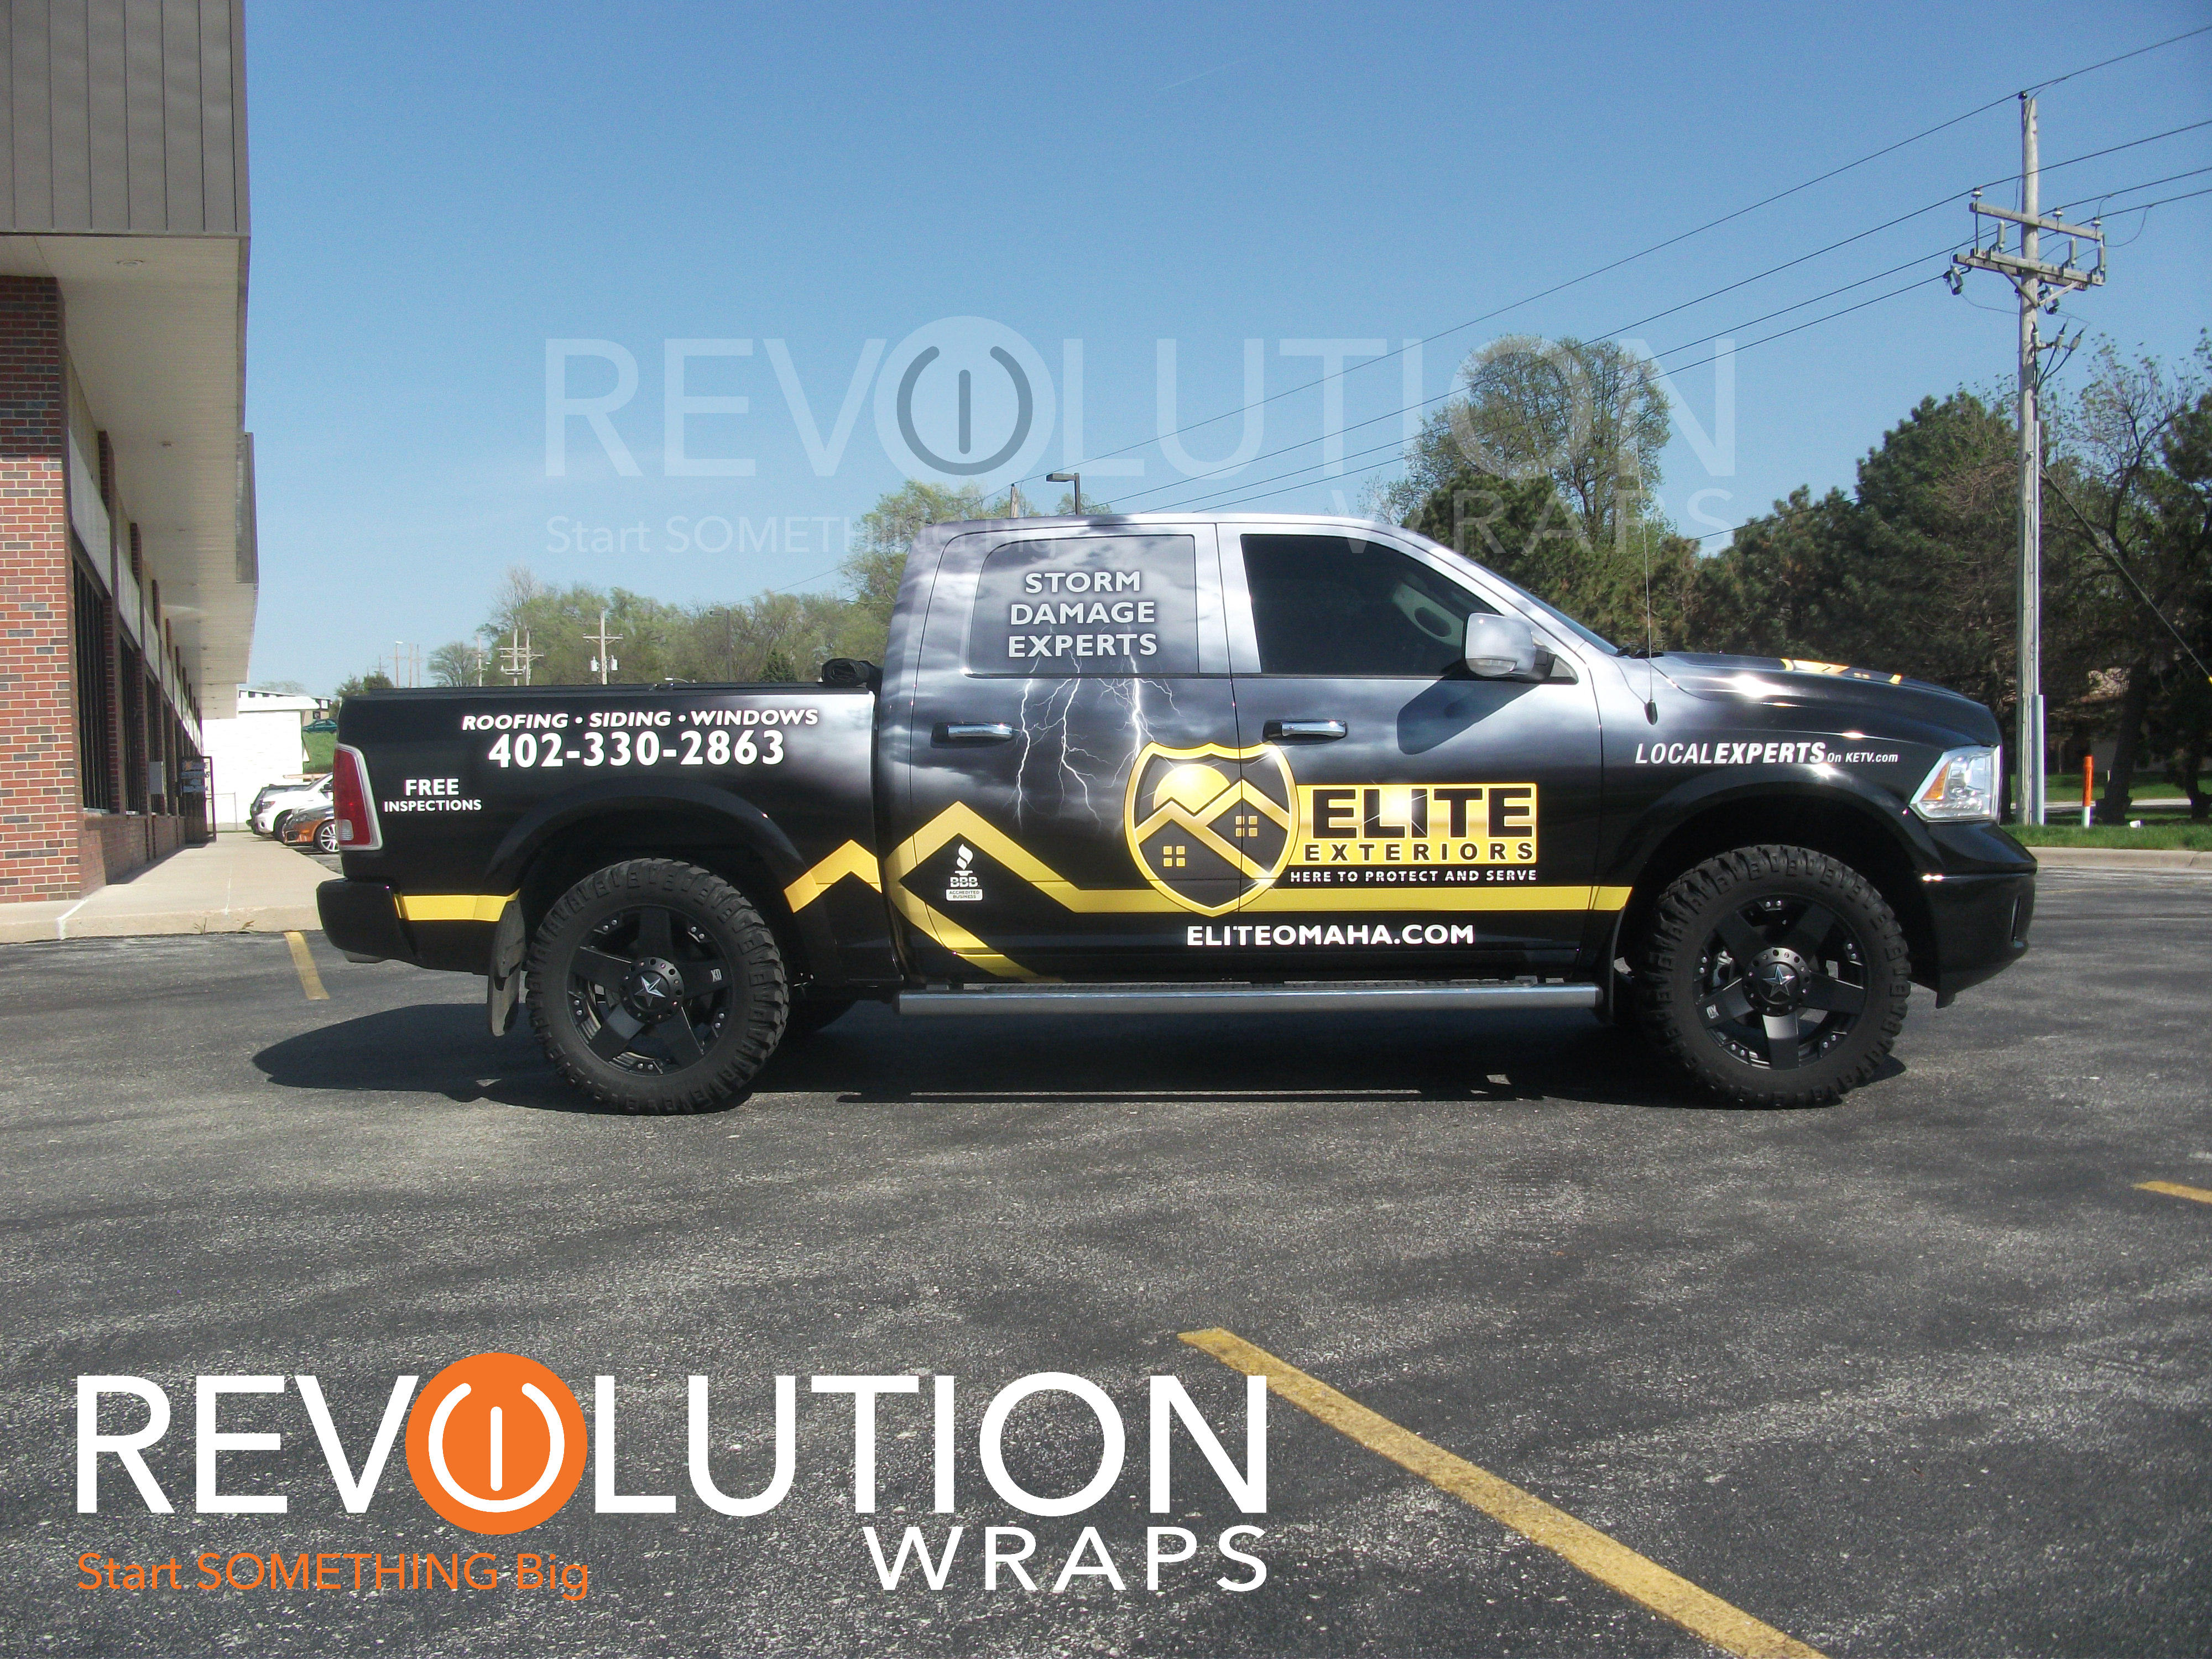 Roofing Vehicle Wrap : Elite exteriors gets all wrapped up revolution wraps